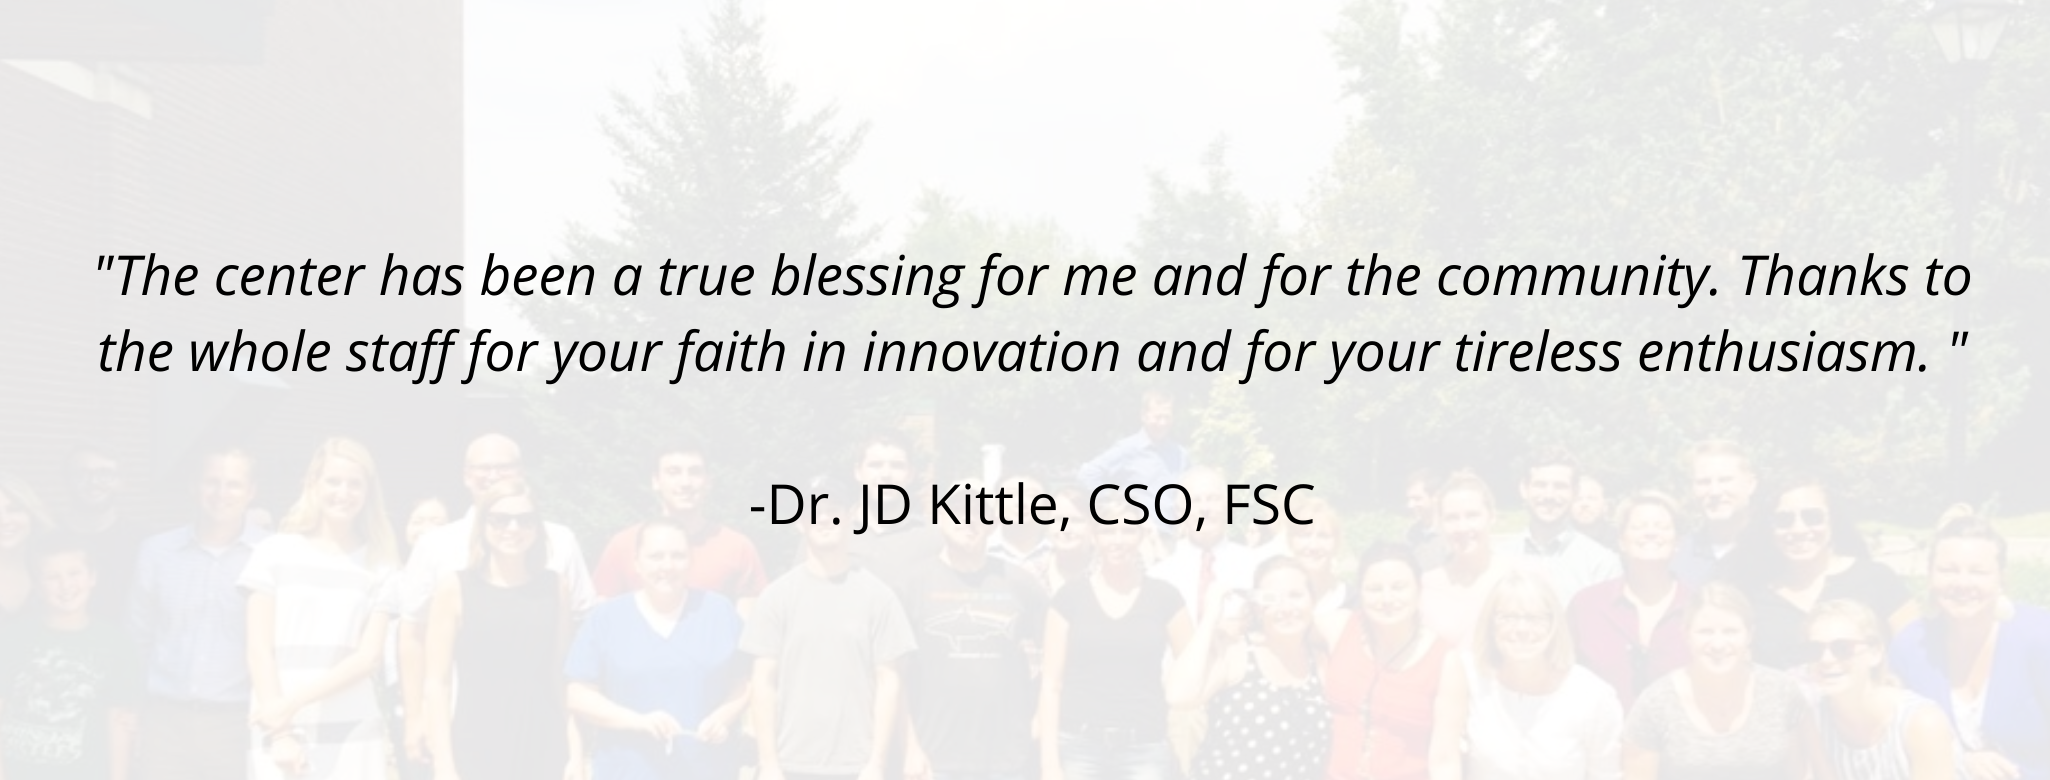 """The center has been a true blessing for me and for the community. Thanks to the whole staff for your faith in innovation and for your tireless enthusiasm. ""  -Dr. JD Kittle, CSO, FSC"